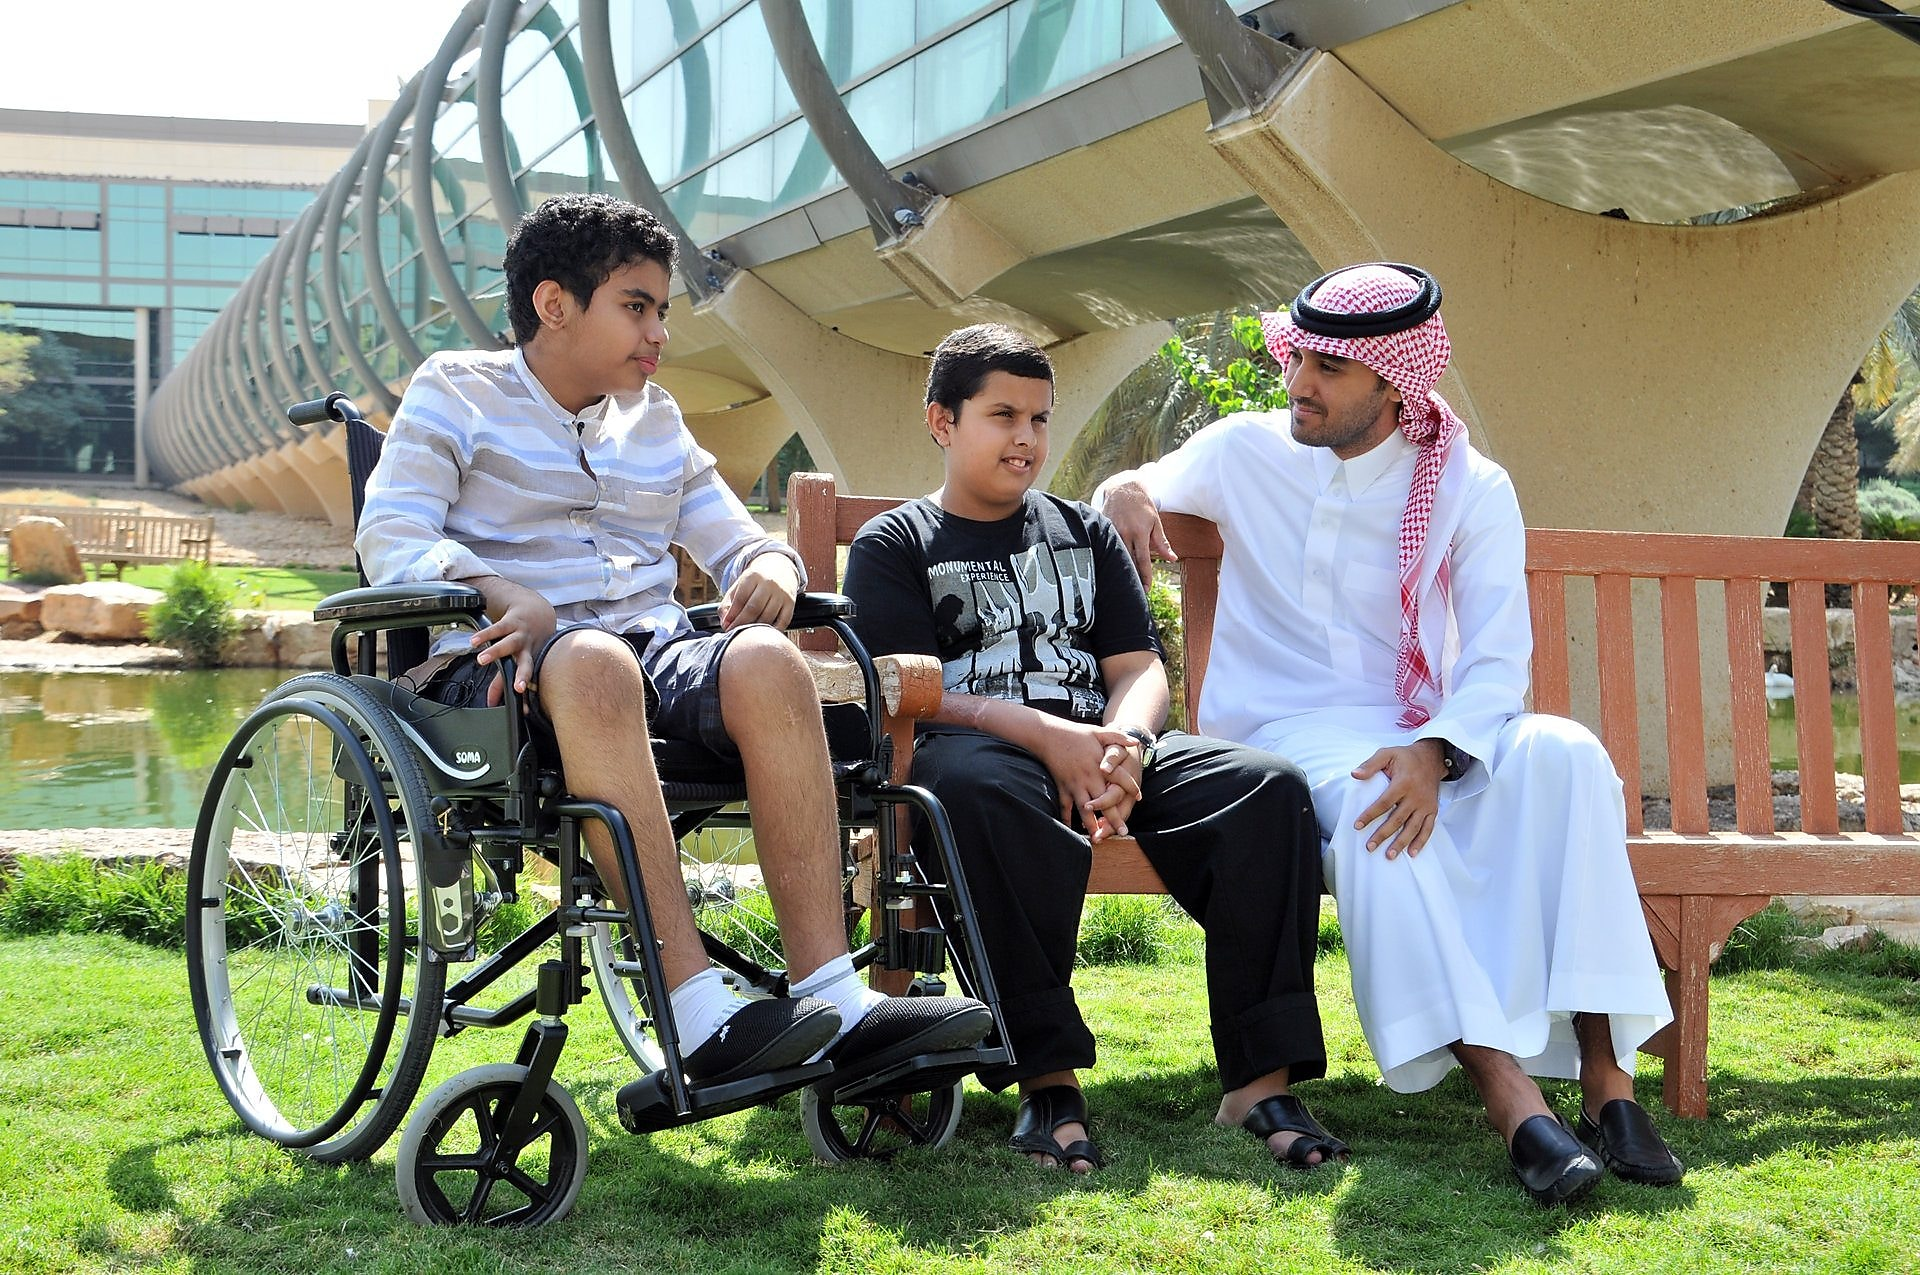 Mohammed Almootesh discussing his accident in the park